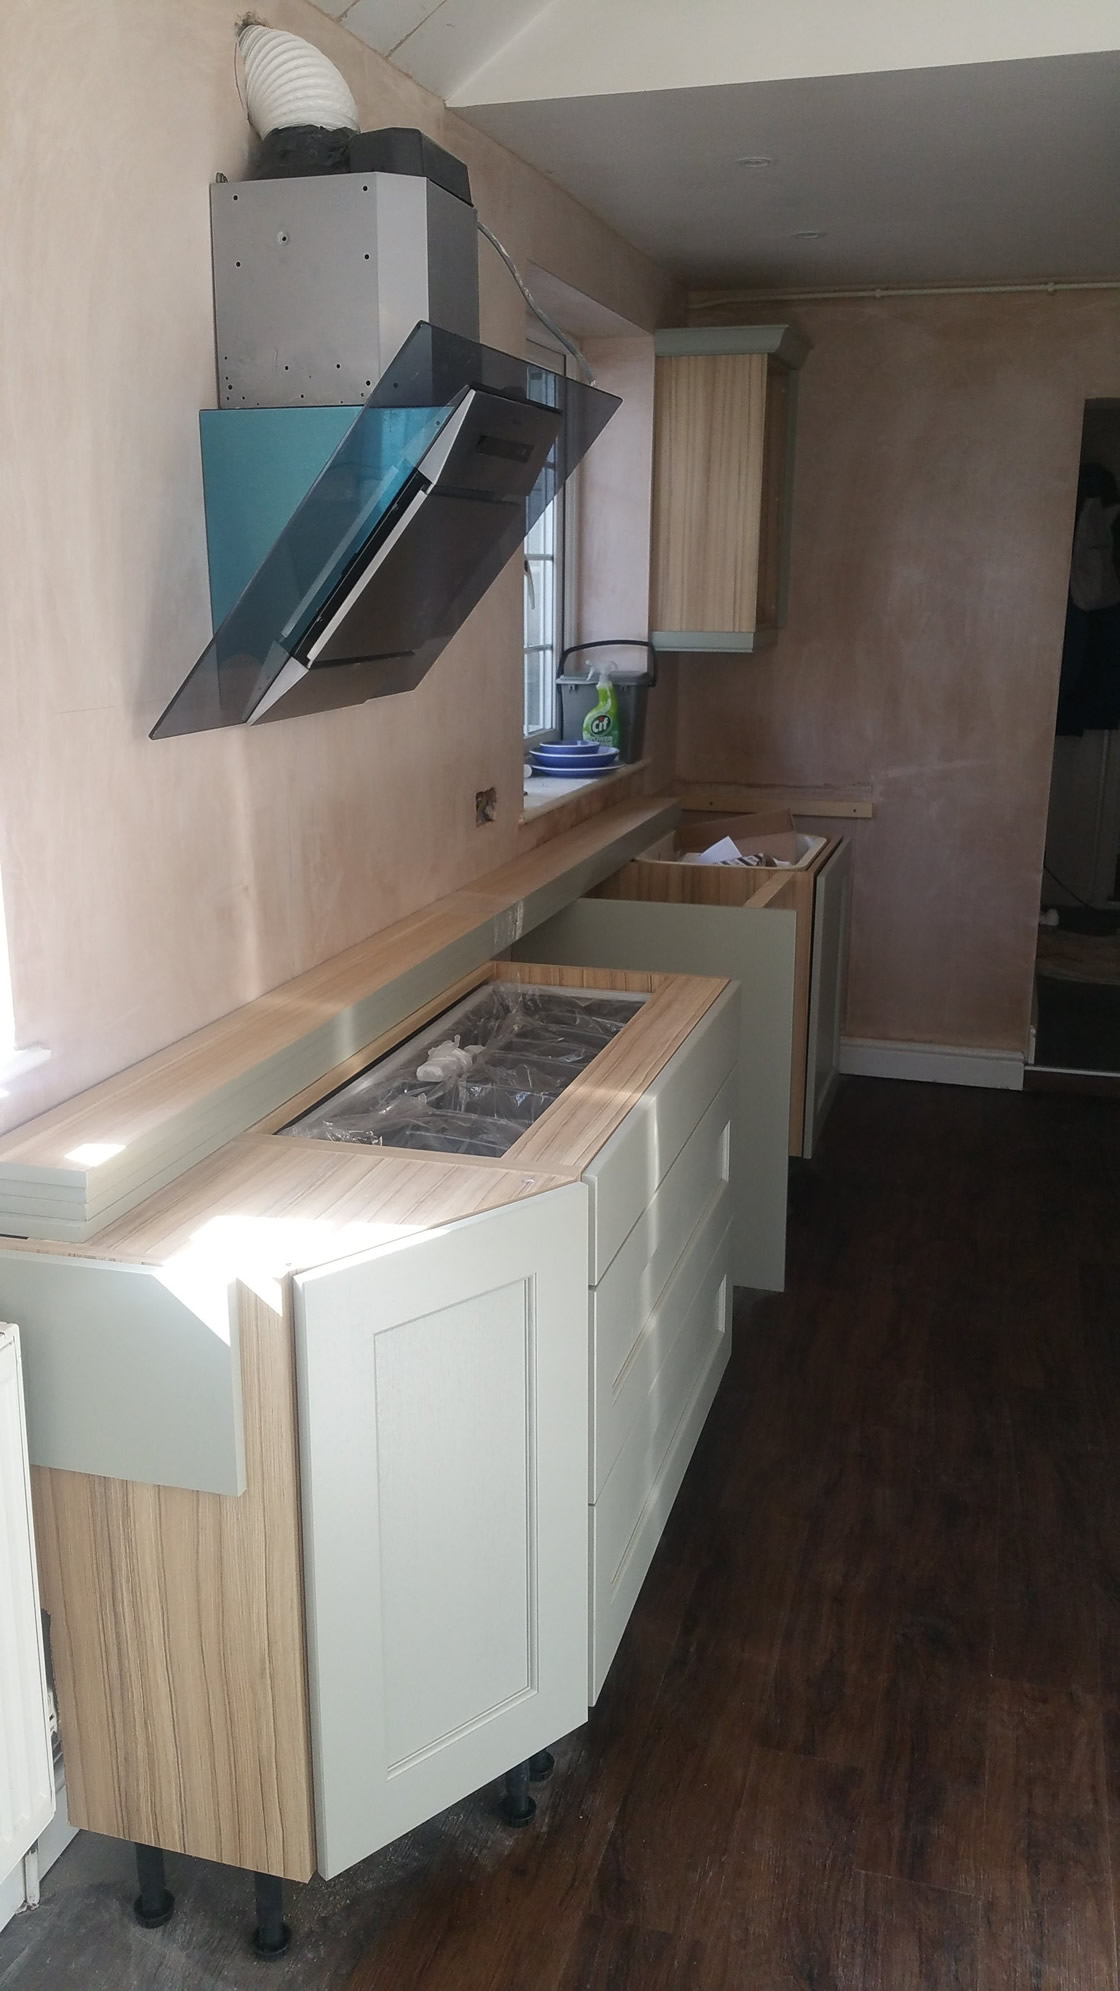 Large New kitchen units going in